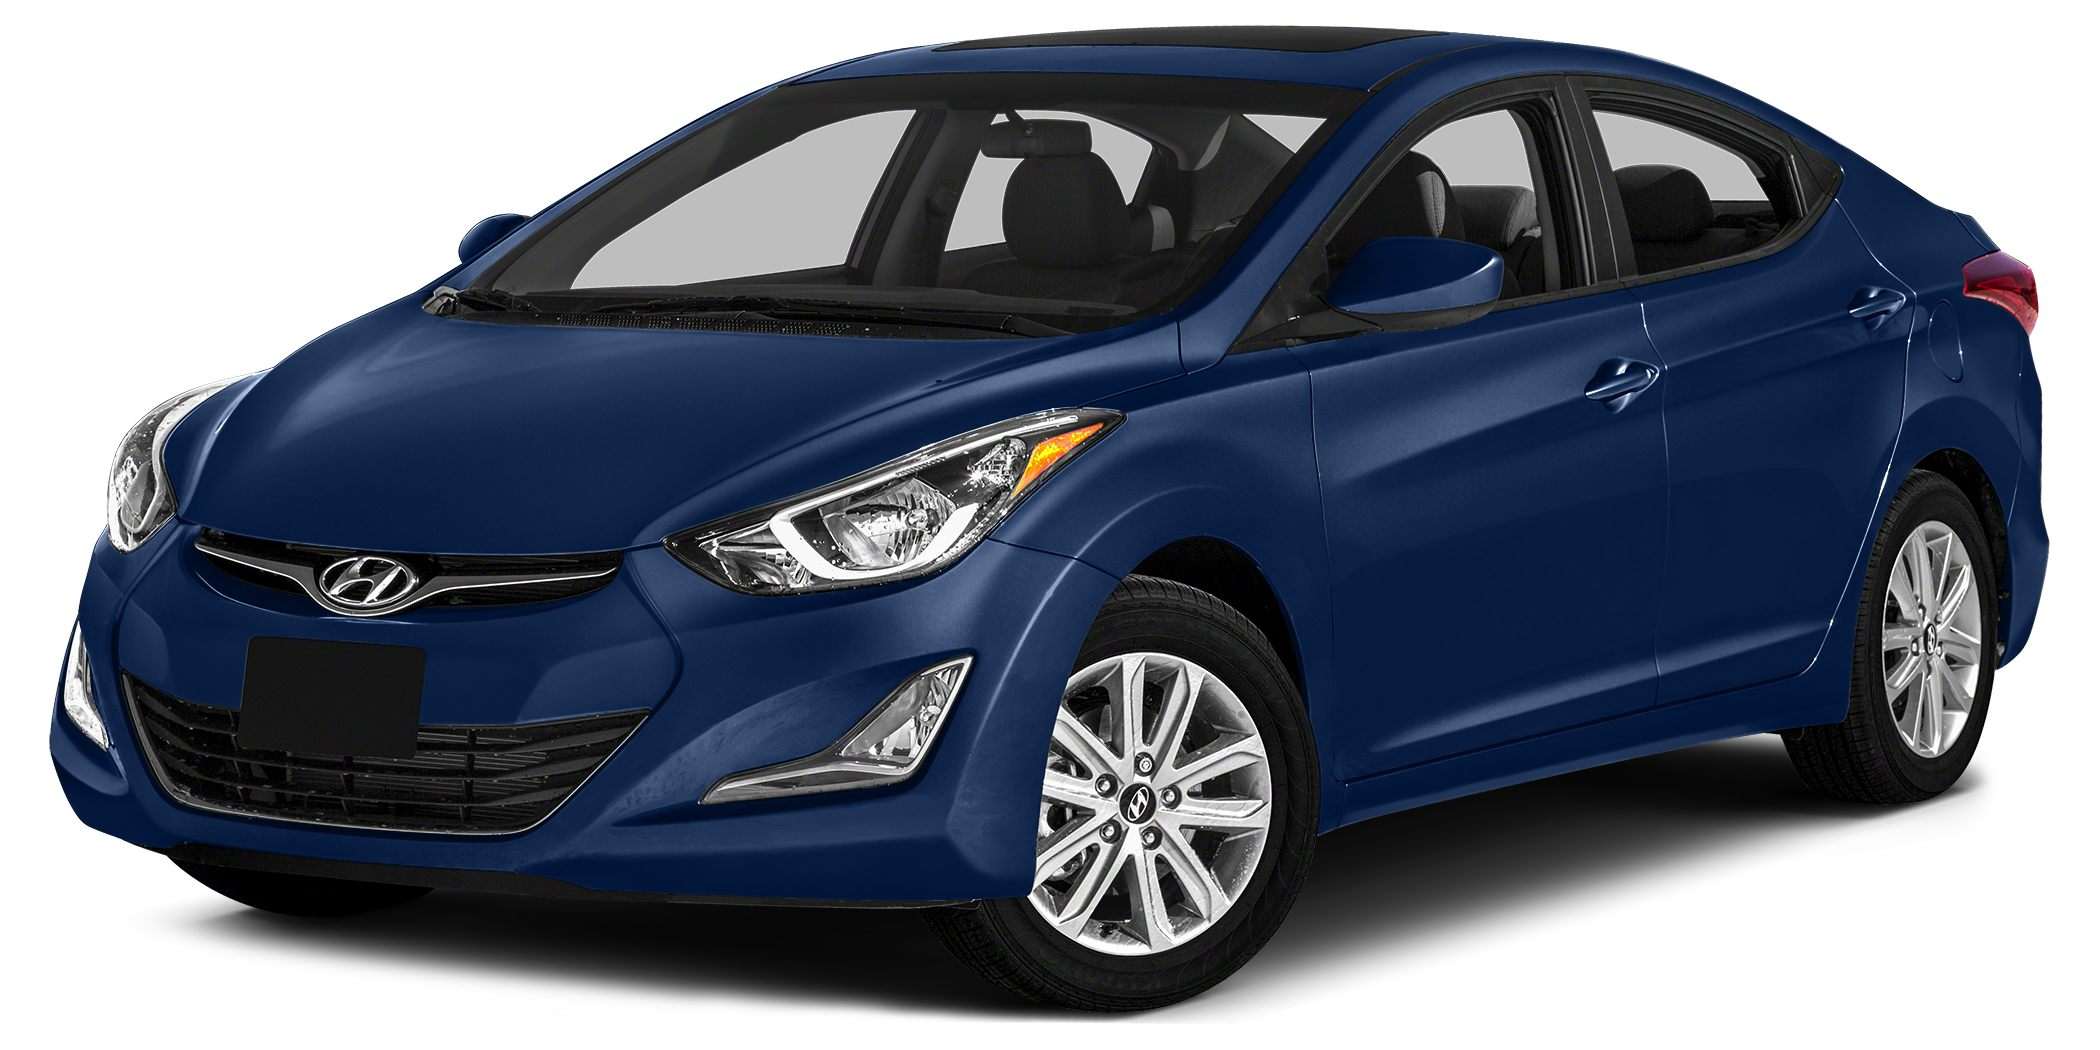 2015 Hyundai Elantra SE Very Low Mileage LESS THAN 5k miles Gets Great Gas Mileage 37 MPG Hwy